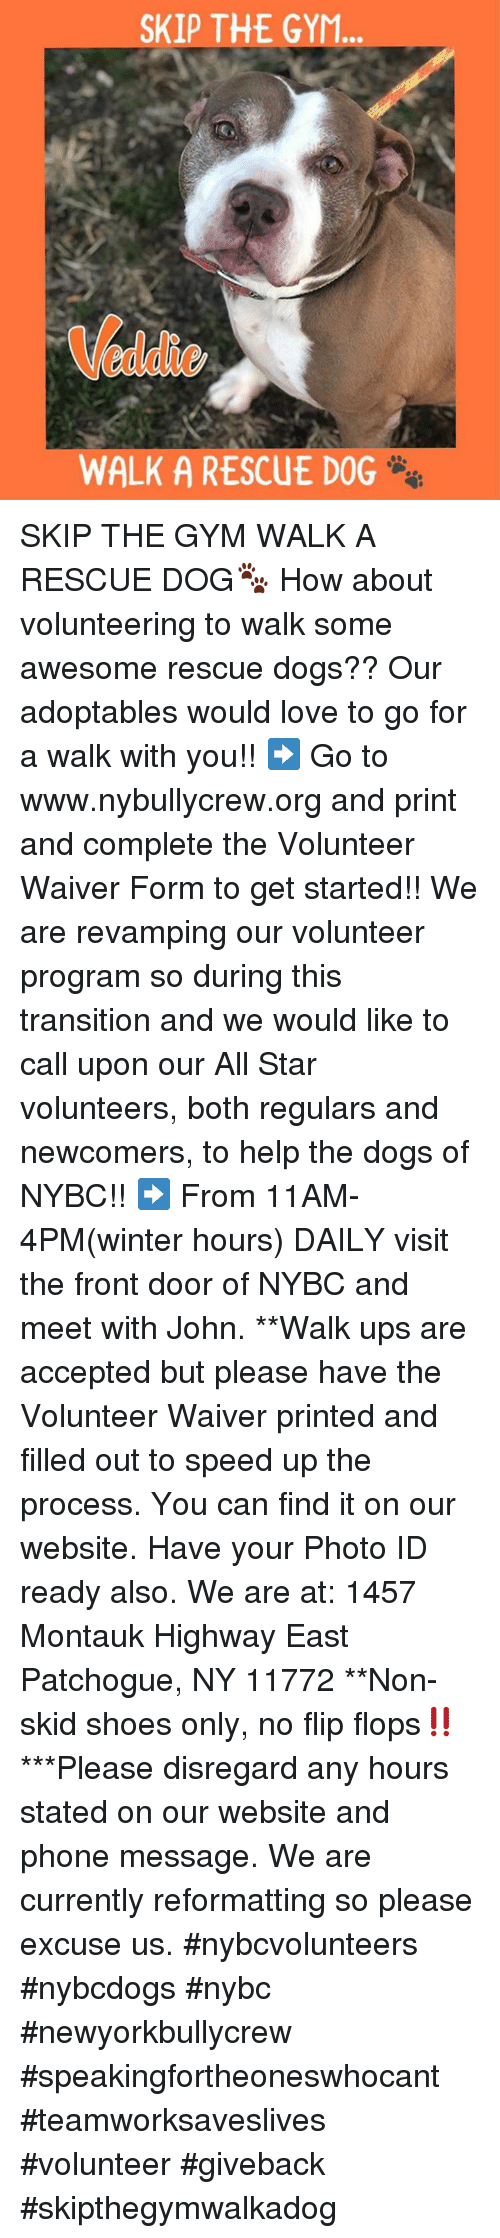 All Star, Dogs, and Gym: SKIP THE GYM  eddie  WALK A RESCUE DOG SKIP THE GYM WALK A RESCUE DOG🐾 How about volunteering to walk some awesome rescue dogs?? Our adoptables would love to go for a walk with you!!  ➡️ Go to www.nybullycrew.org and print and complete the Volunteer Waiver Form to get started!!    We are revamping our volunteer program so during this transition and we would like to call upon our All Star volunteers, both regulars and newcomers, to help the dogs of NYBC!! ➡️ From 11AM-4PM(winter hours)  DAILY visit the front door of NYBC and meet with John.   **Walk ups are accepted but please have the Volunteer Waiver printed and filled out to speed up the process. You can find it on our website. Have your Photo ID ready also.  We are at: 1457 Montauk Highway East Patchogue, NY 11772 **Non-skid shoes only, no flip flops‼️ ***Please disregard any hours stated on our website and phone message. We are currently reformatting so please excuse us.  #nybcvolunteers #nybcdogs  #nybc #newyorkbullycrew  #speakingfortheoneswhocant #teamworksaveslives #volunteer #giveback #skipthegymwalkadog